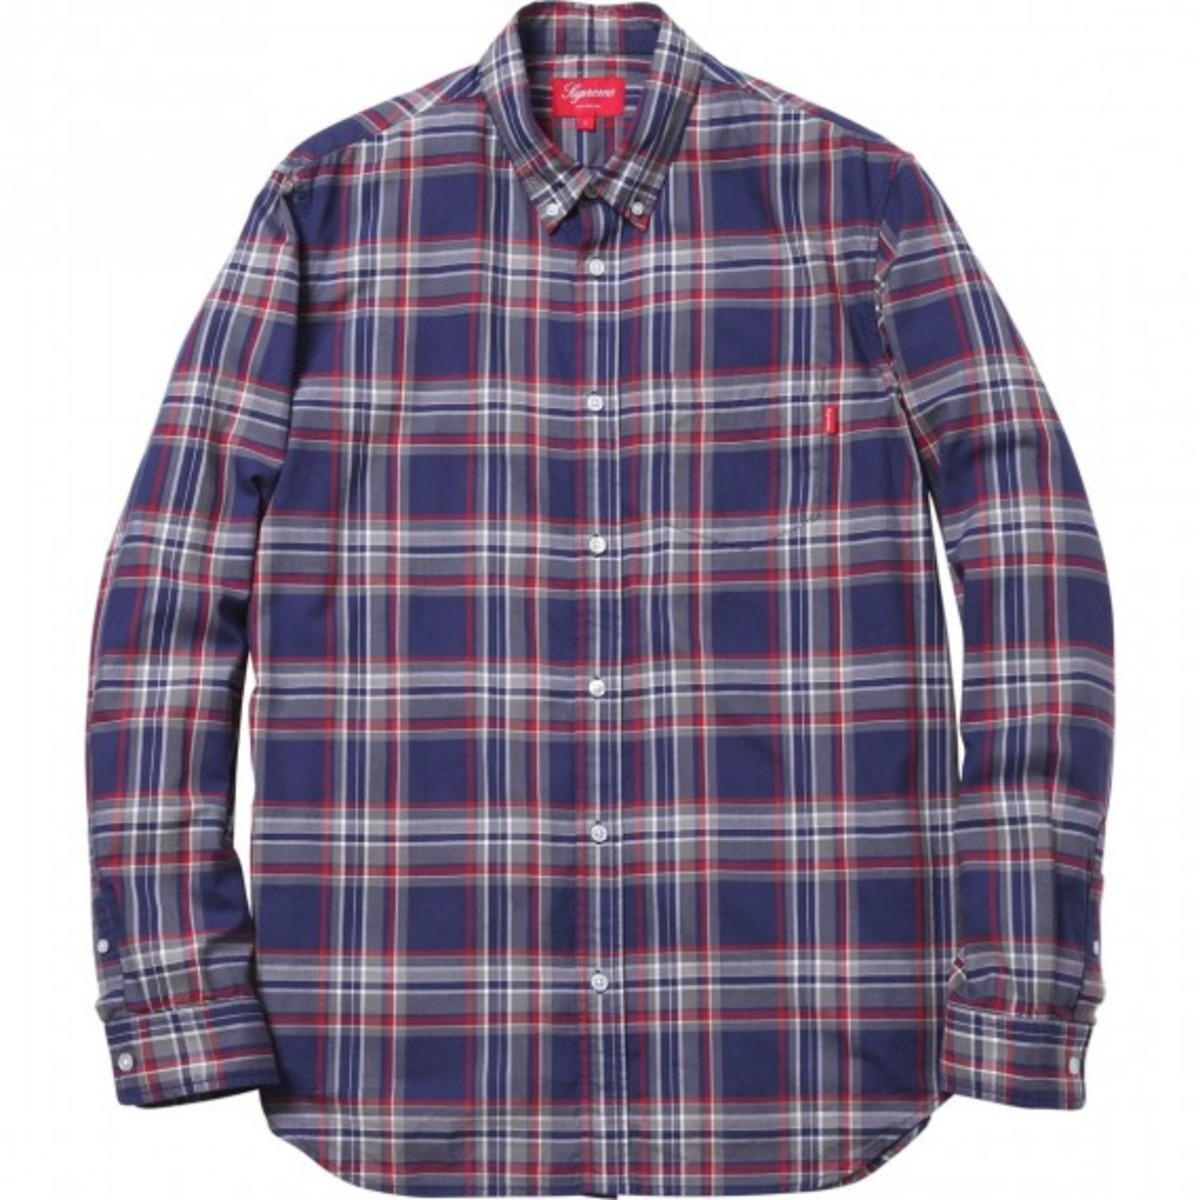 supreme-fall-winter-2011-collection-available-now-12